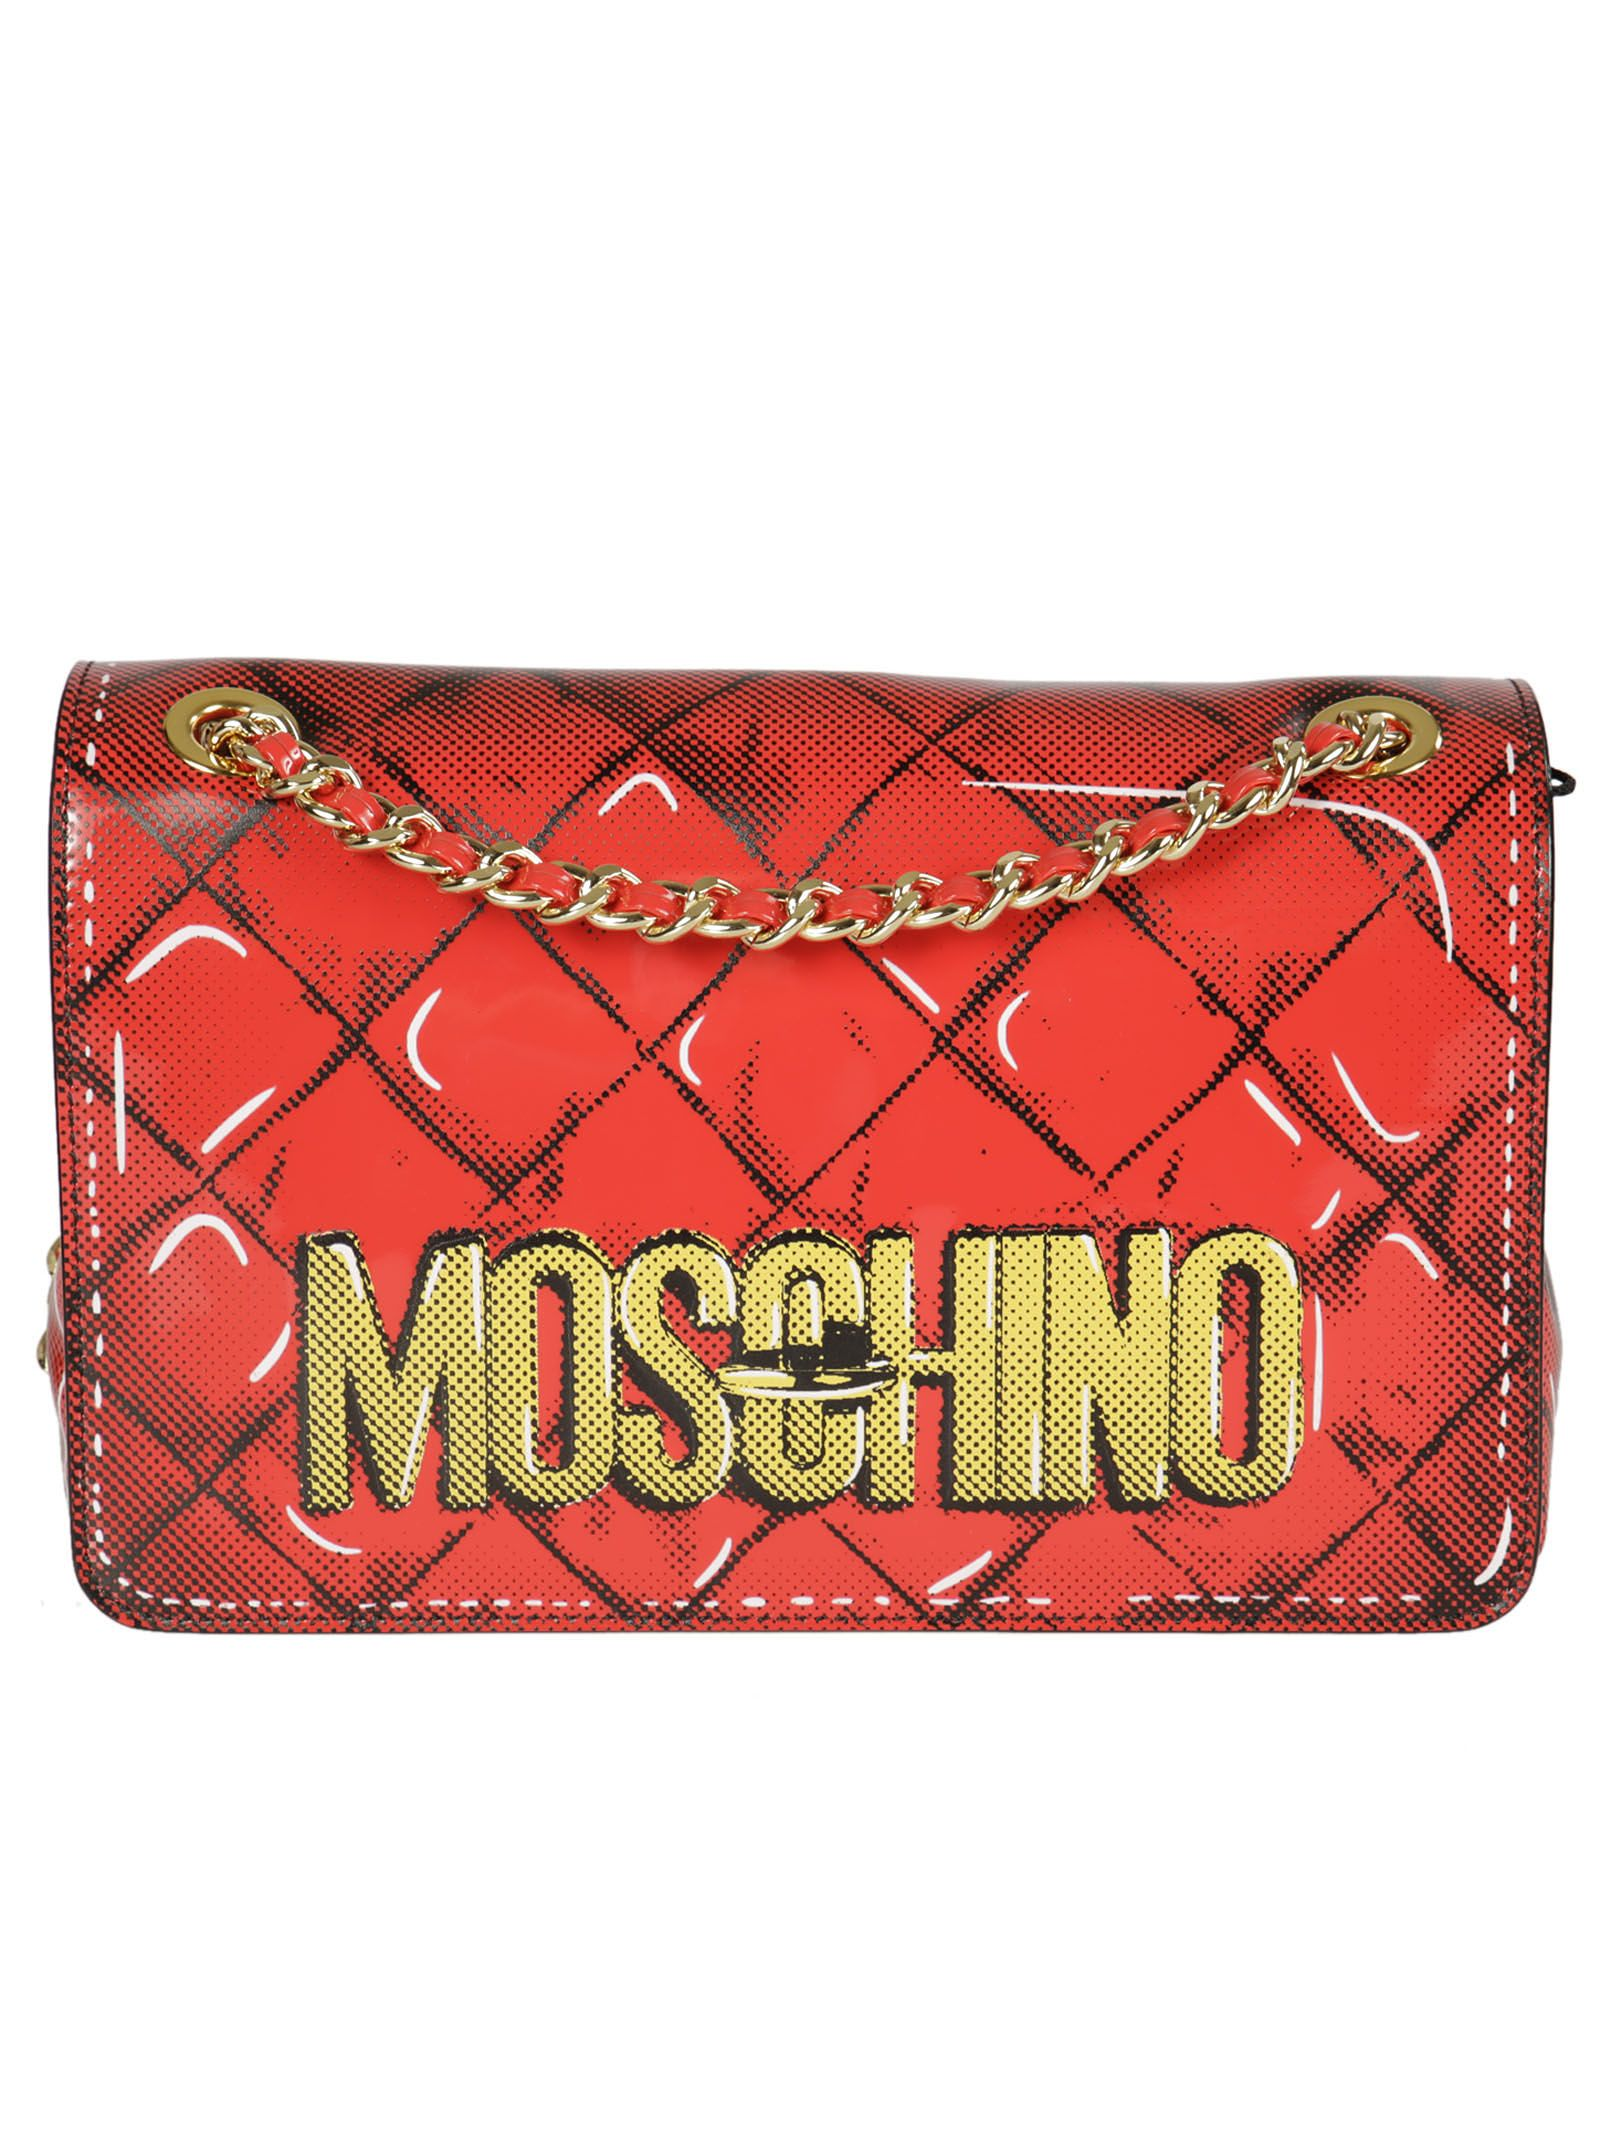 Trompe-l'oeil Shoulder Bag from Moschino: Red Trompe-l'oeil Shoulder Bag with Foldover top, Snap Closure, Chain Strap, Gold-tone Hardware, Logo stamp and Patch pocket.